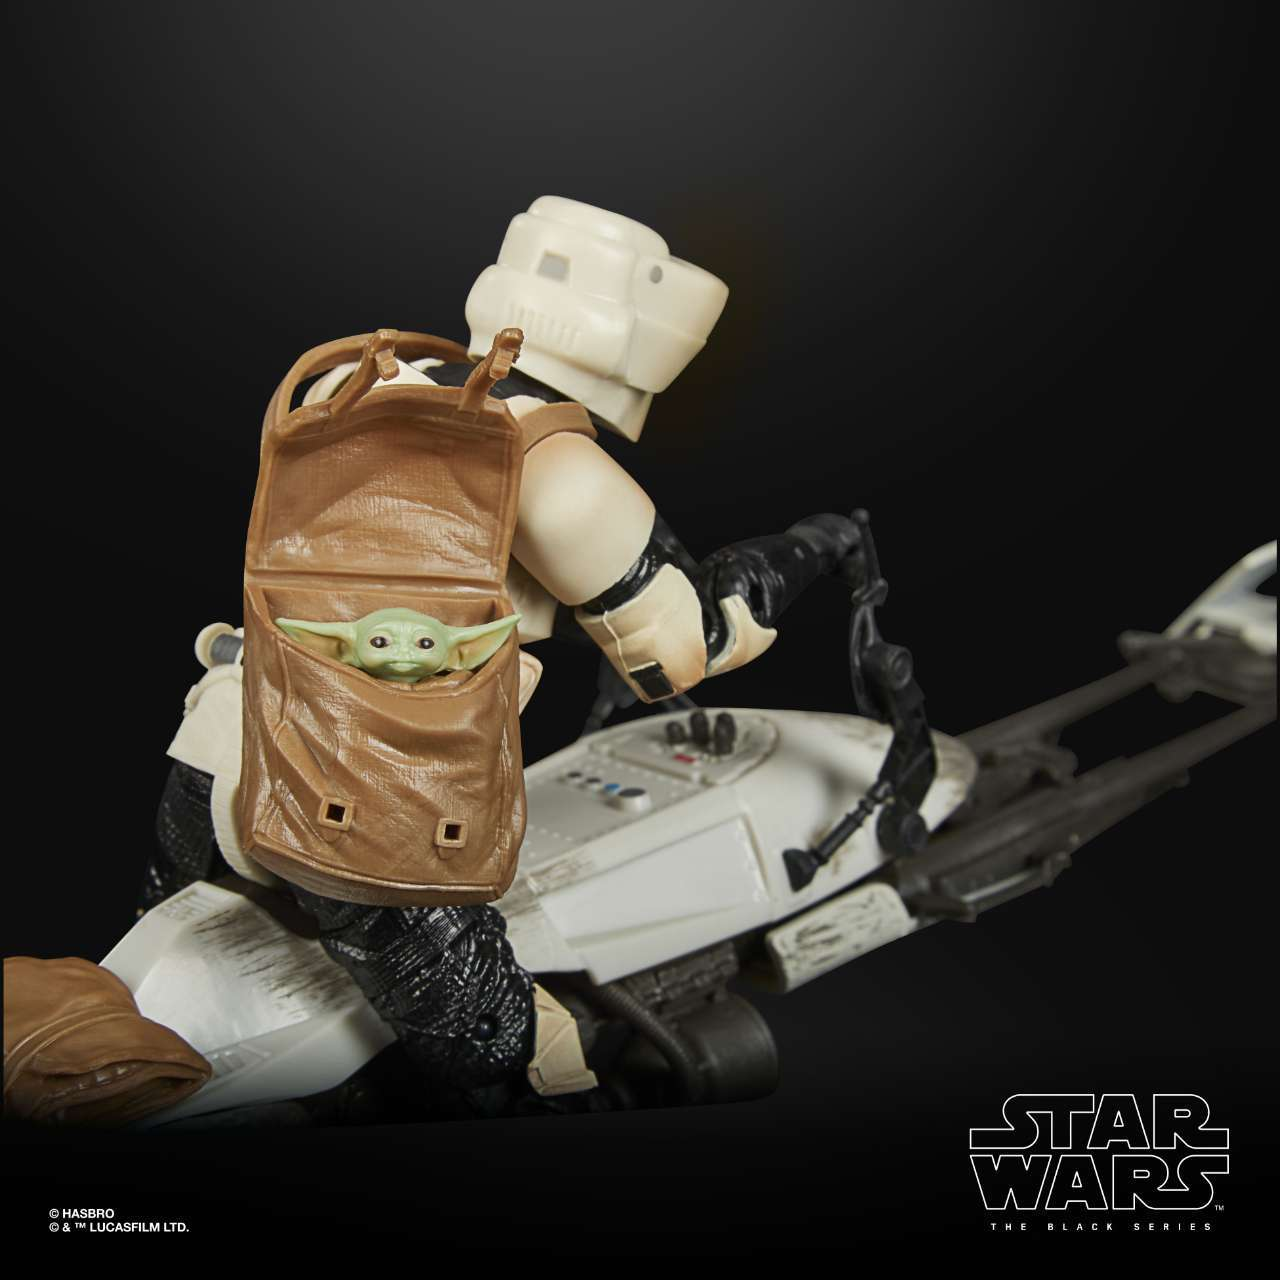 STAR WARS THE BLACK SERIES 6-INCH SPEEDER BIKE SCOUT TROOPER Figure & Vehicle Set - oop (6)